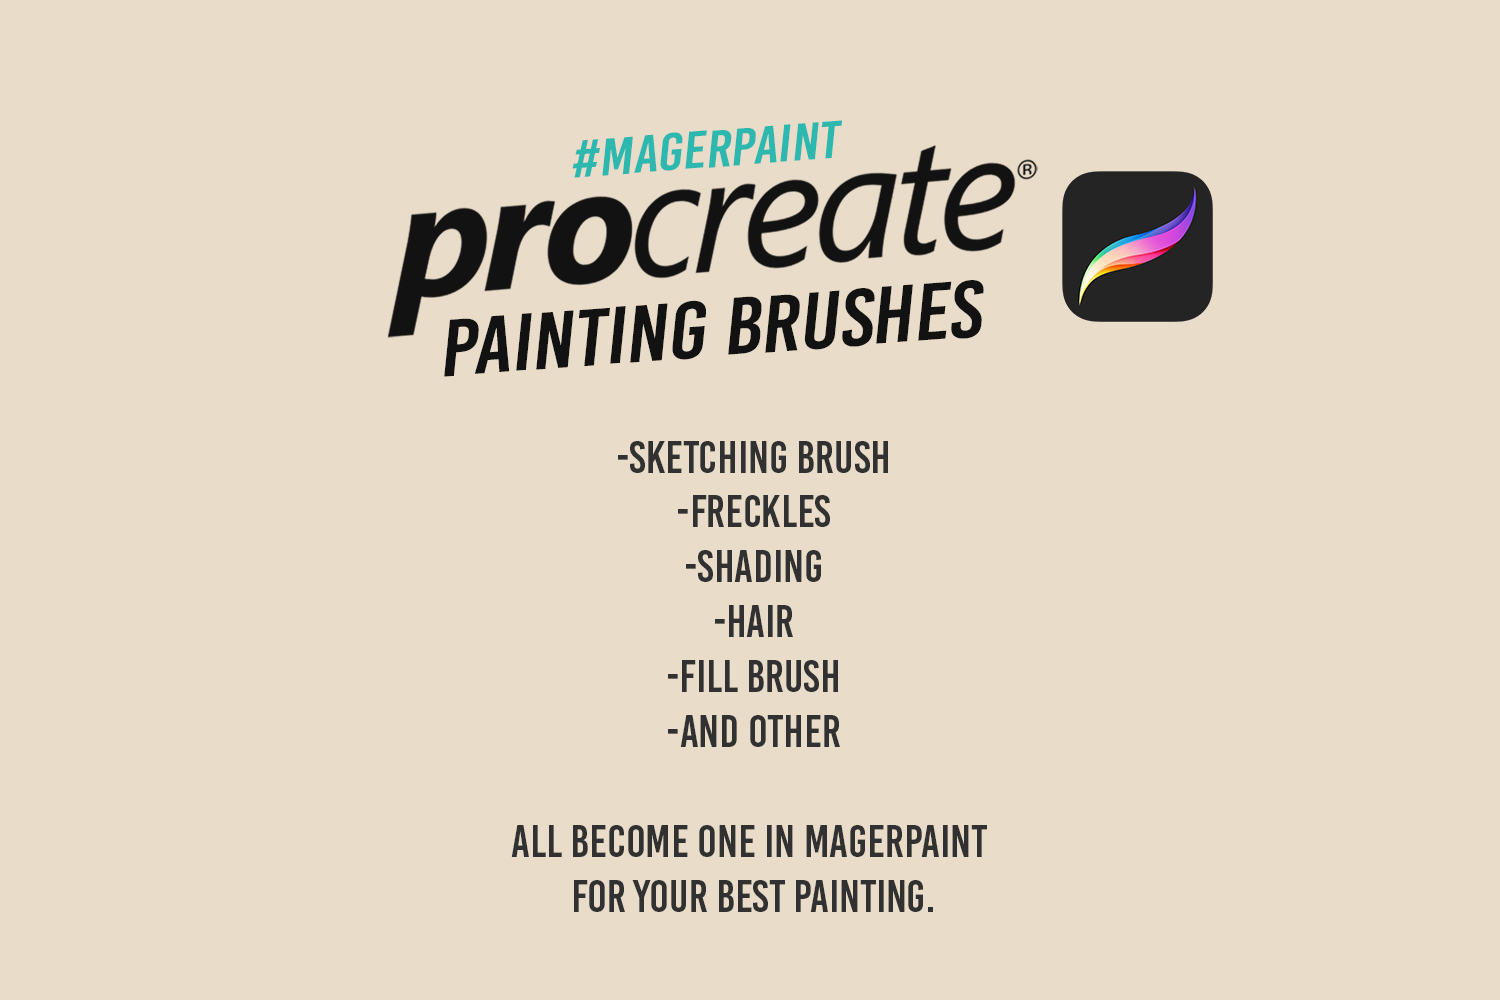 MAGERPAINT - Procreate Painting Brushes example image 3